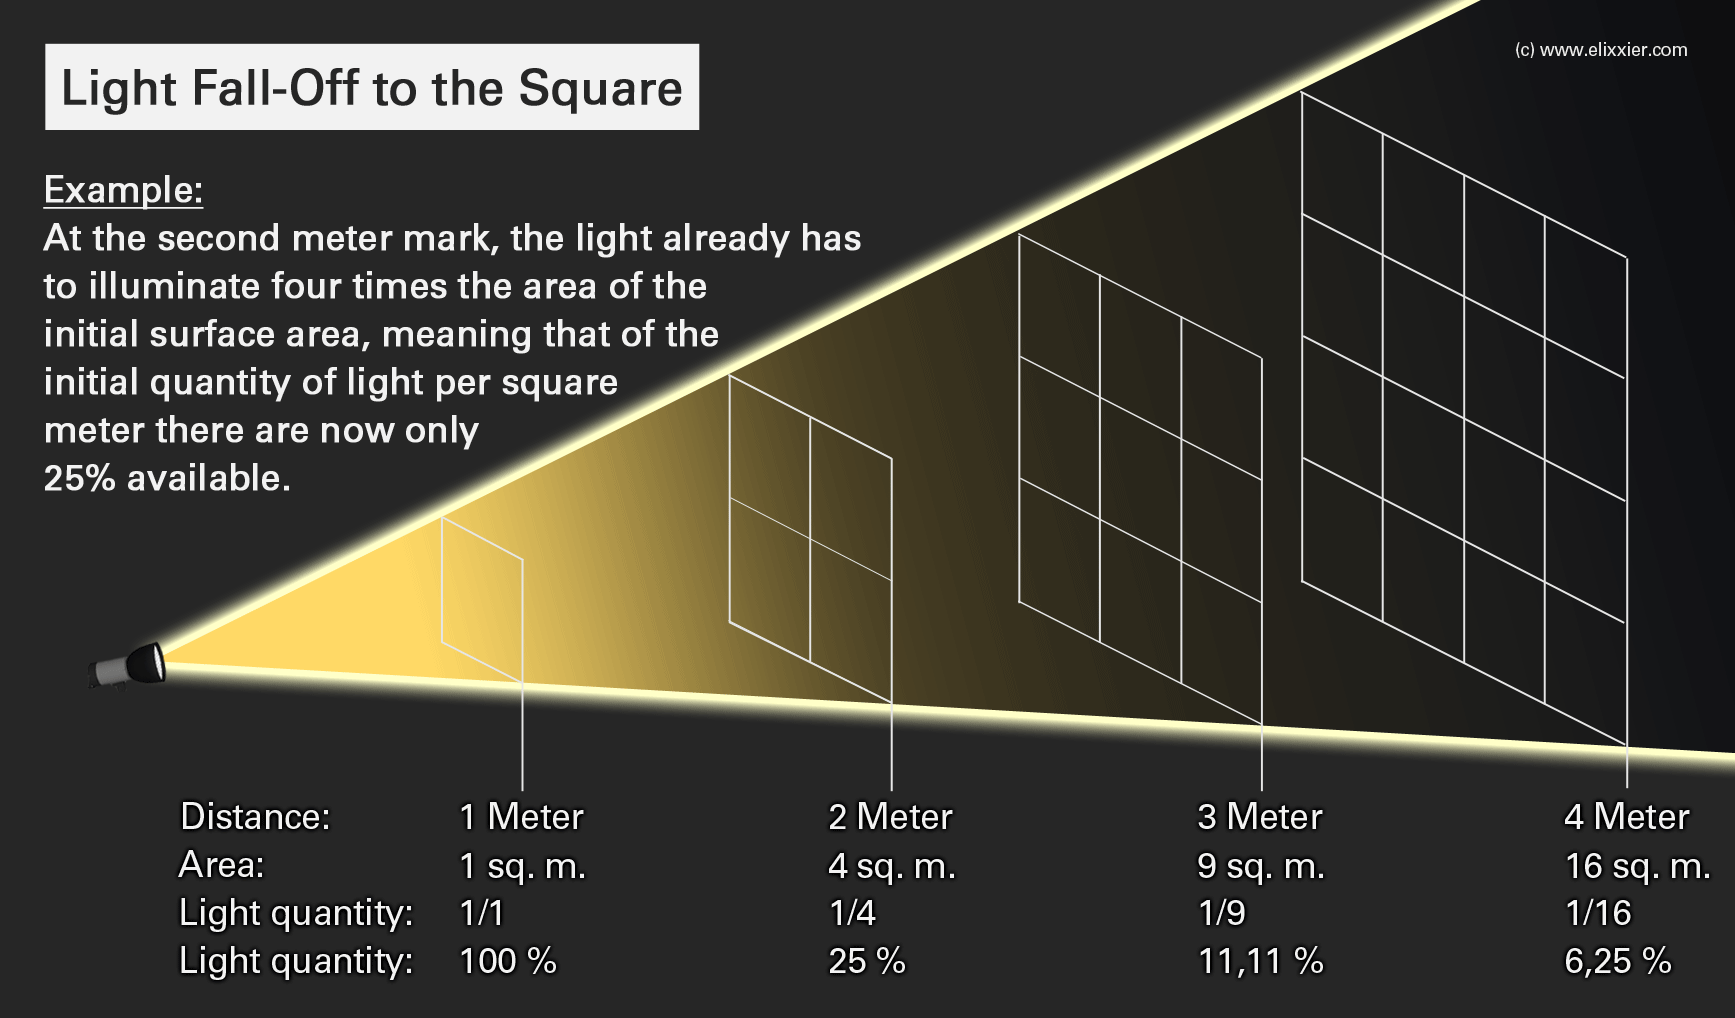 Light-Fall-Off-to-the-Square